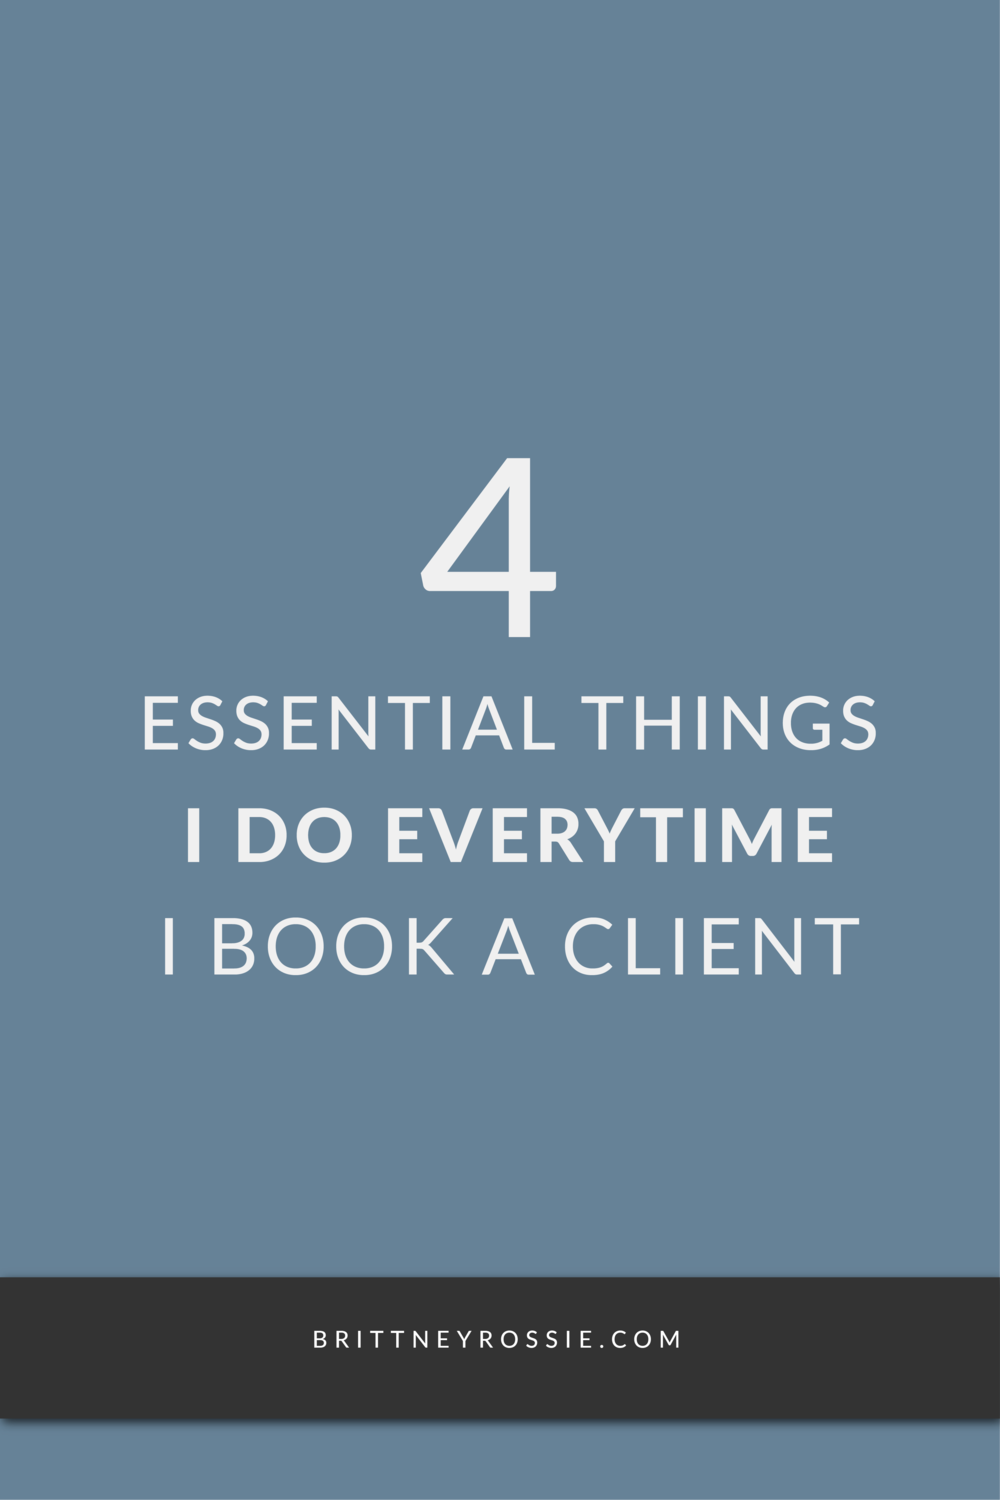 4-Essential-Things-I-Do-Everytime-I-Book-A-Client_BrittneyRossie.com.png